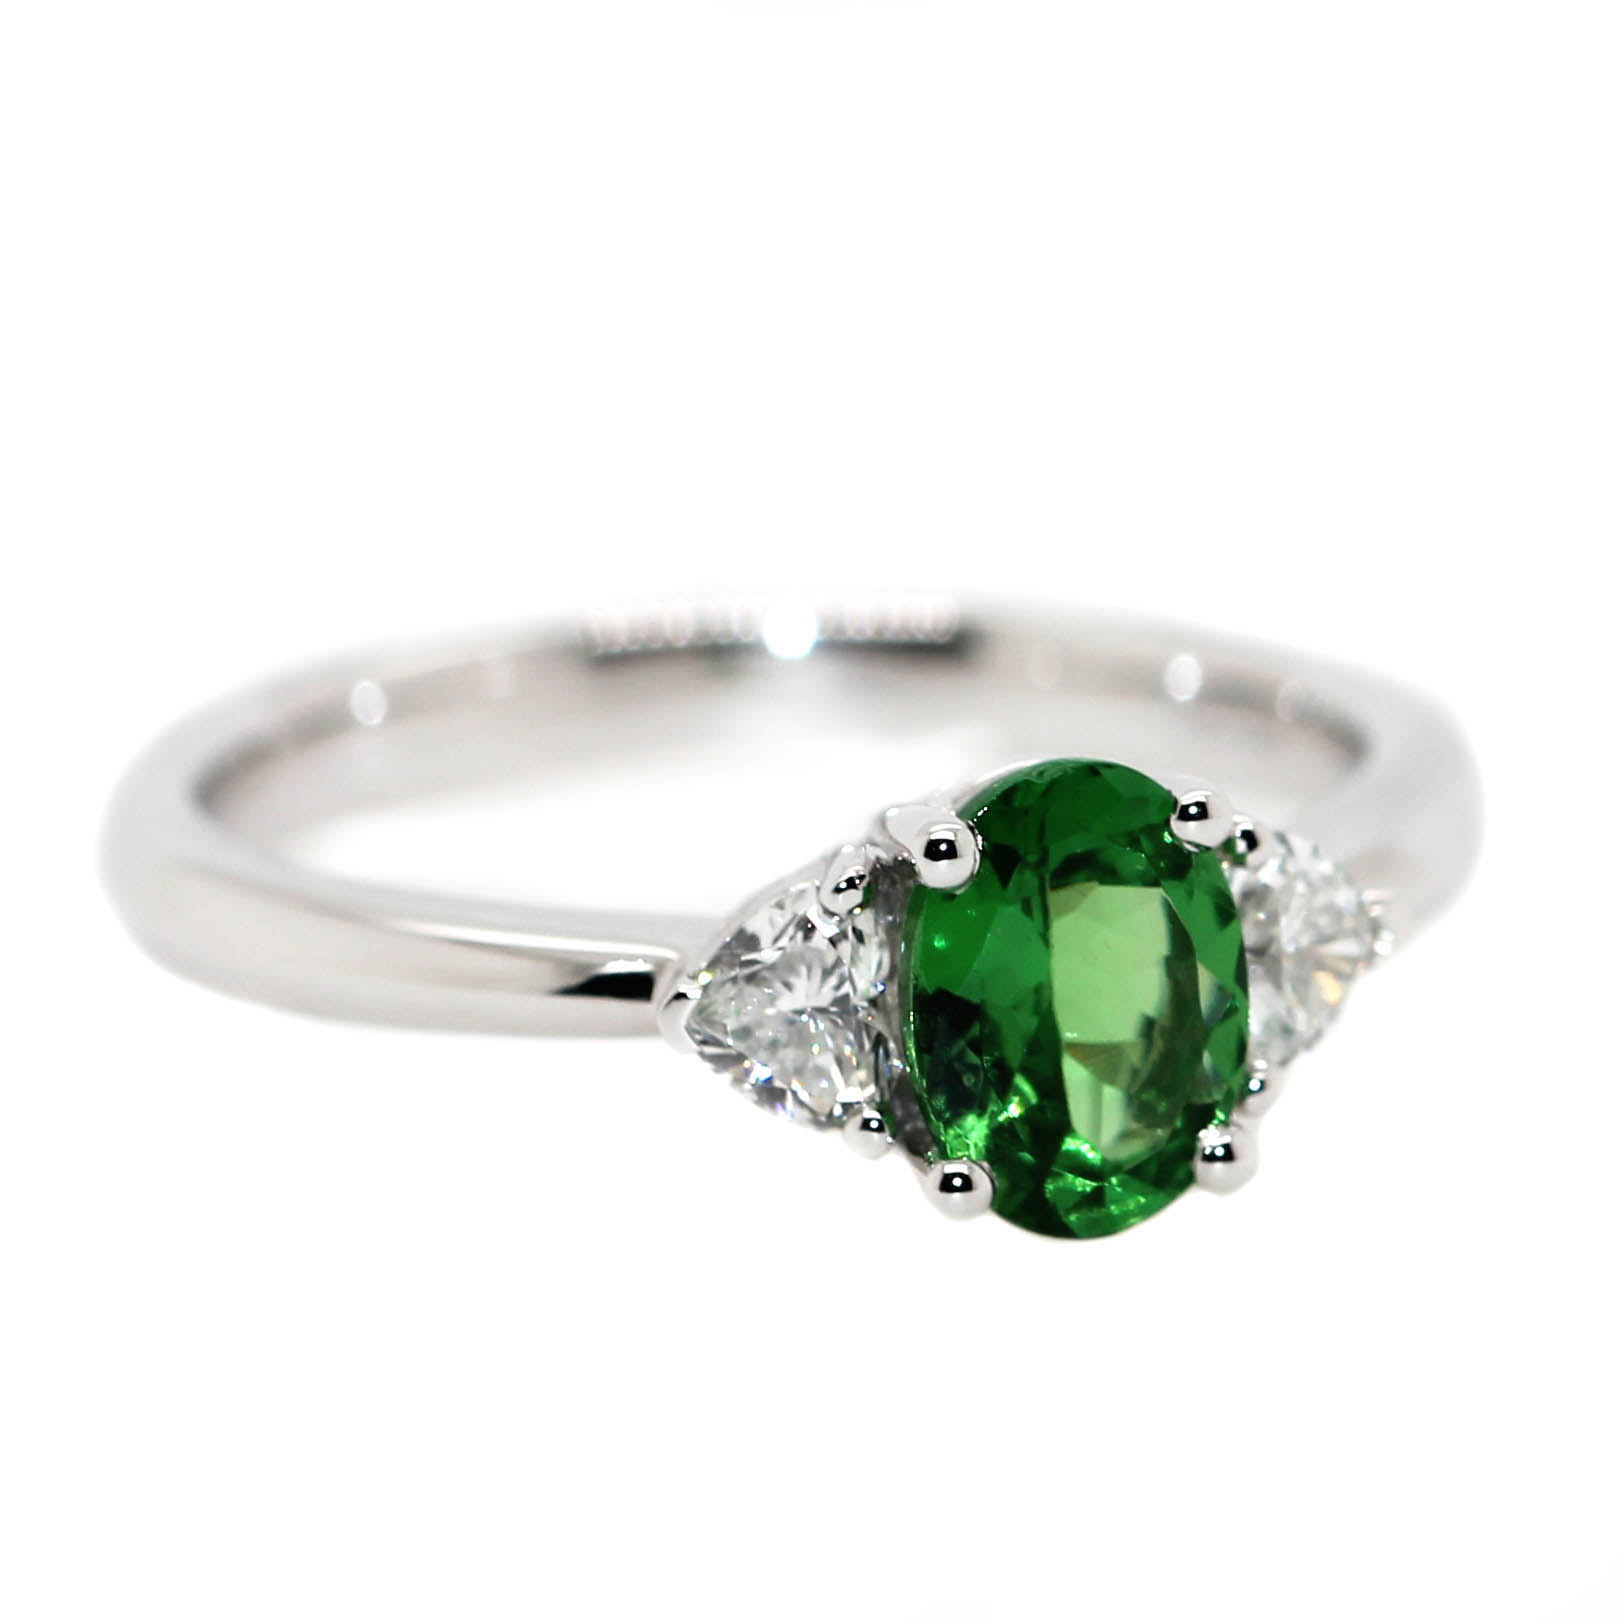 18ct White Gold, .82ct Tsavorite & .29ct of Diamonds.